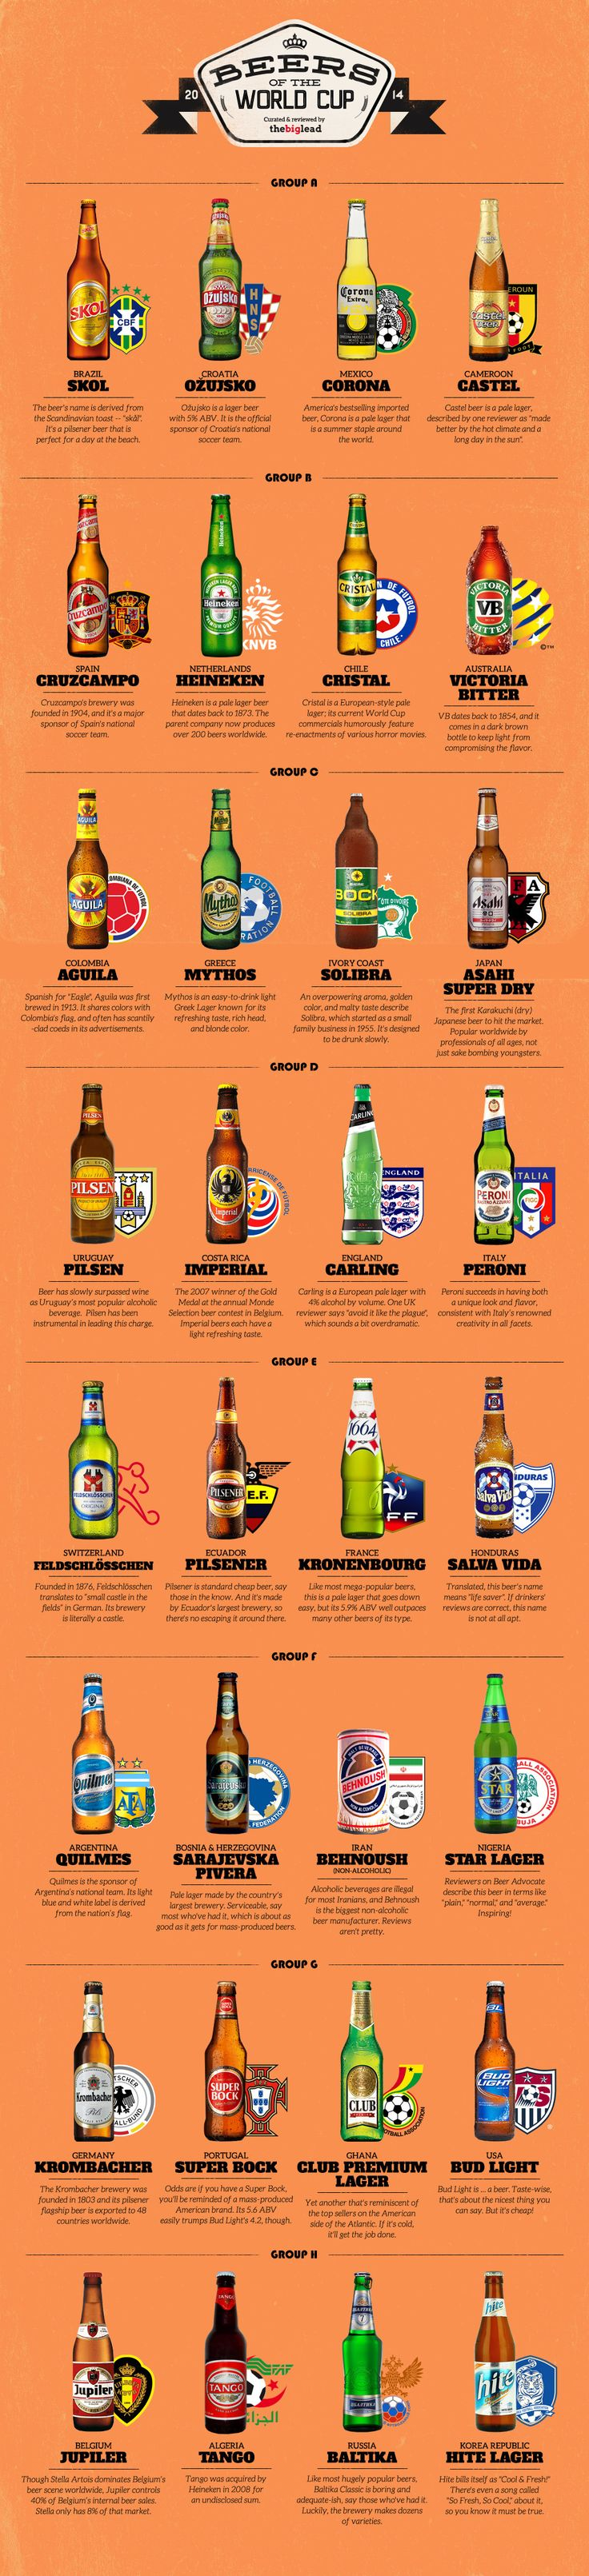 The Most Popular Beer From Each World Cup Country.  http://shar.es/PxhZp  #Soccer #WorldCup #Beer